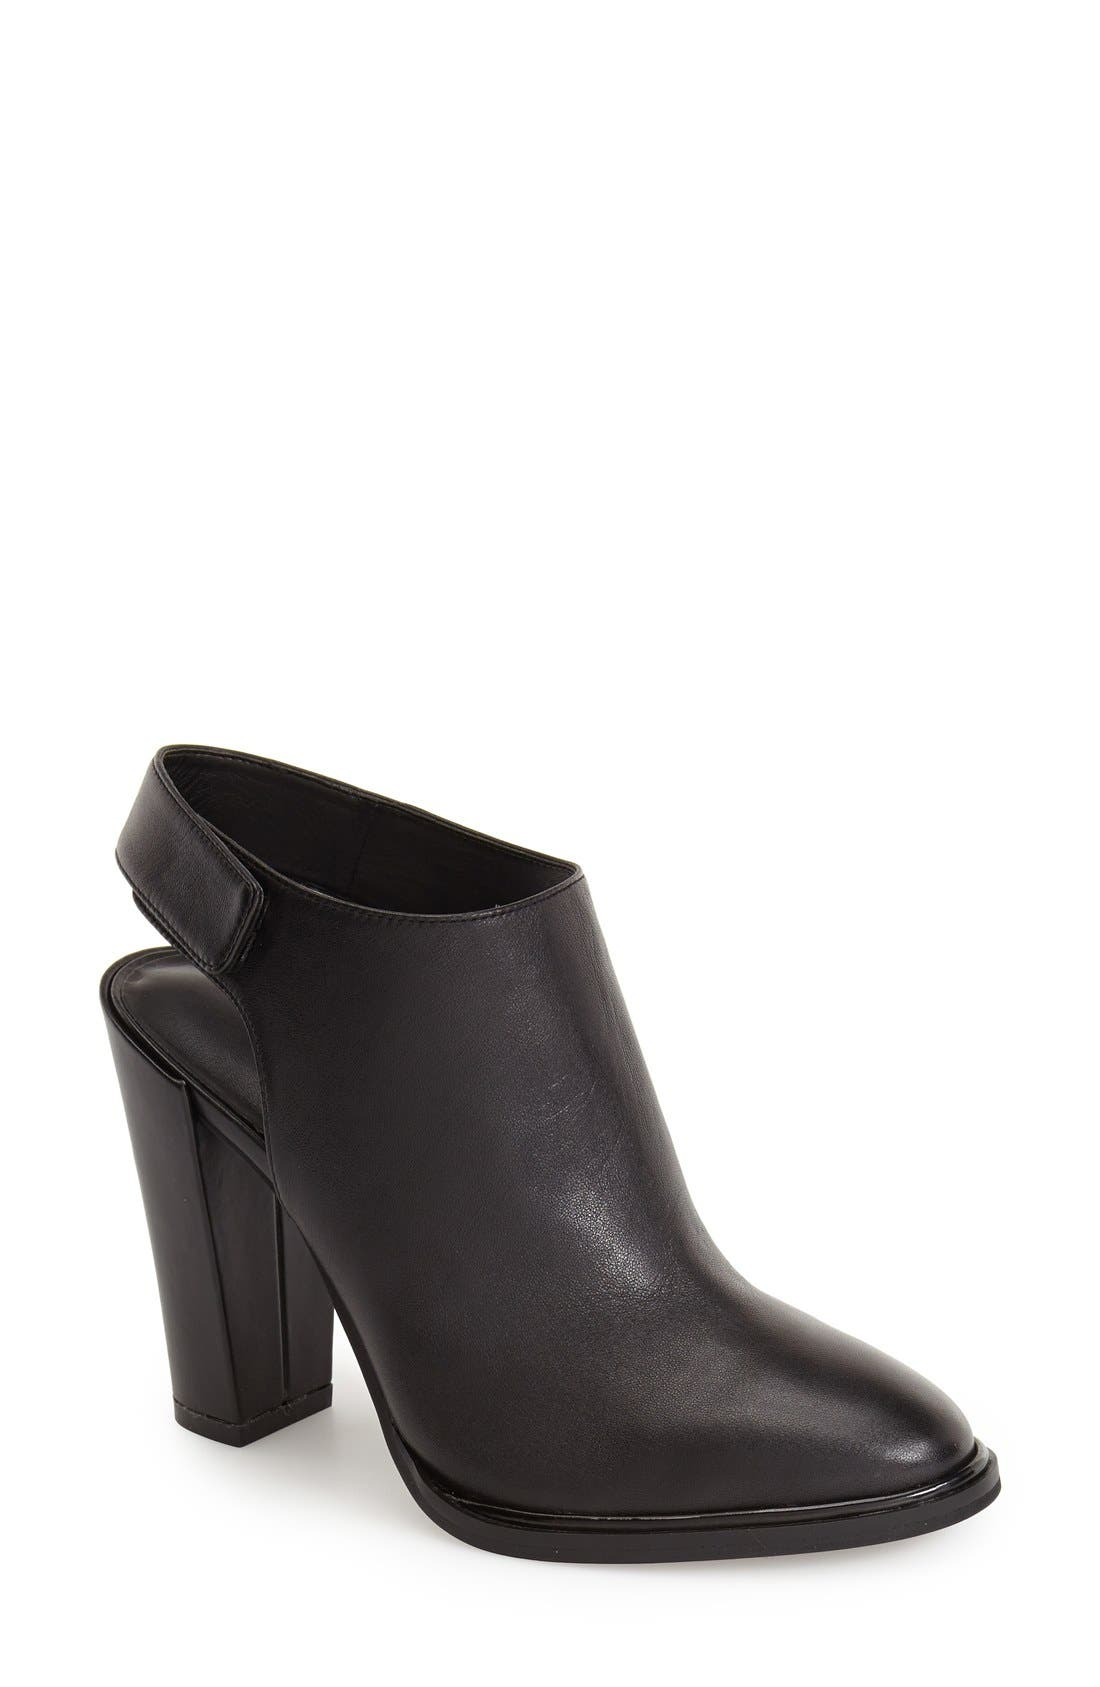 Main Image - Kenneth Cole New York 'Jill' Slingback Clog (Women)